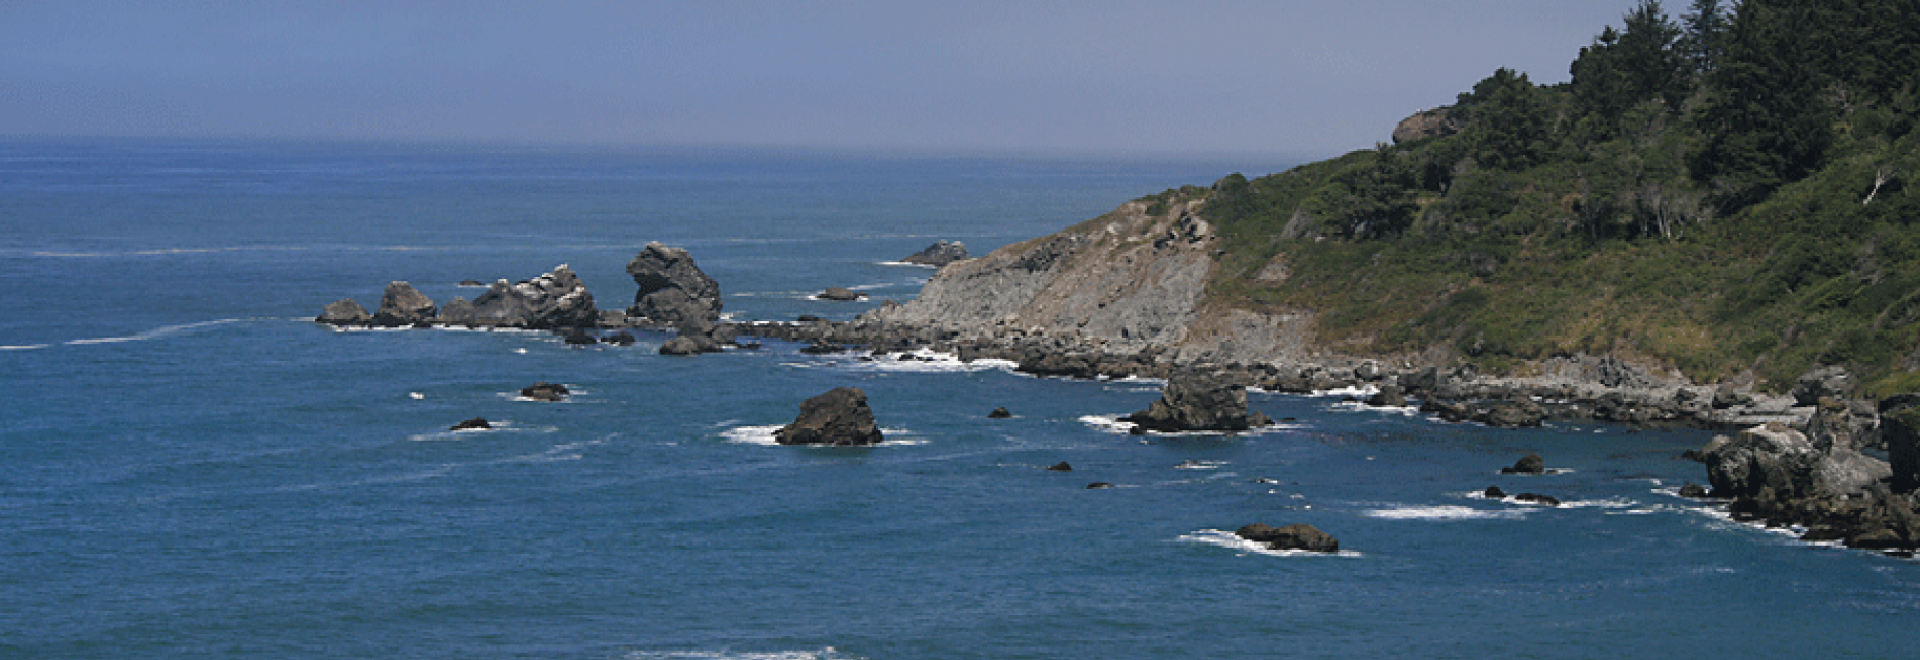 The view from Palmer's Point of Rocky Point at Patrick's Point State Park